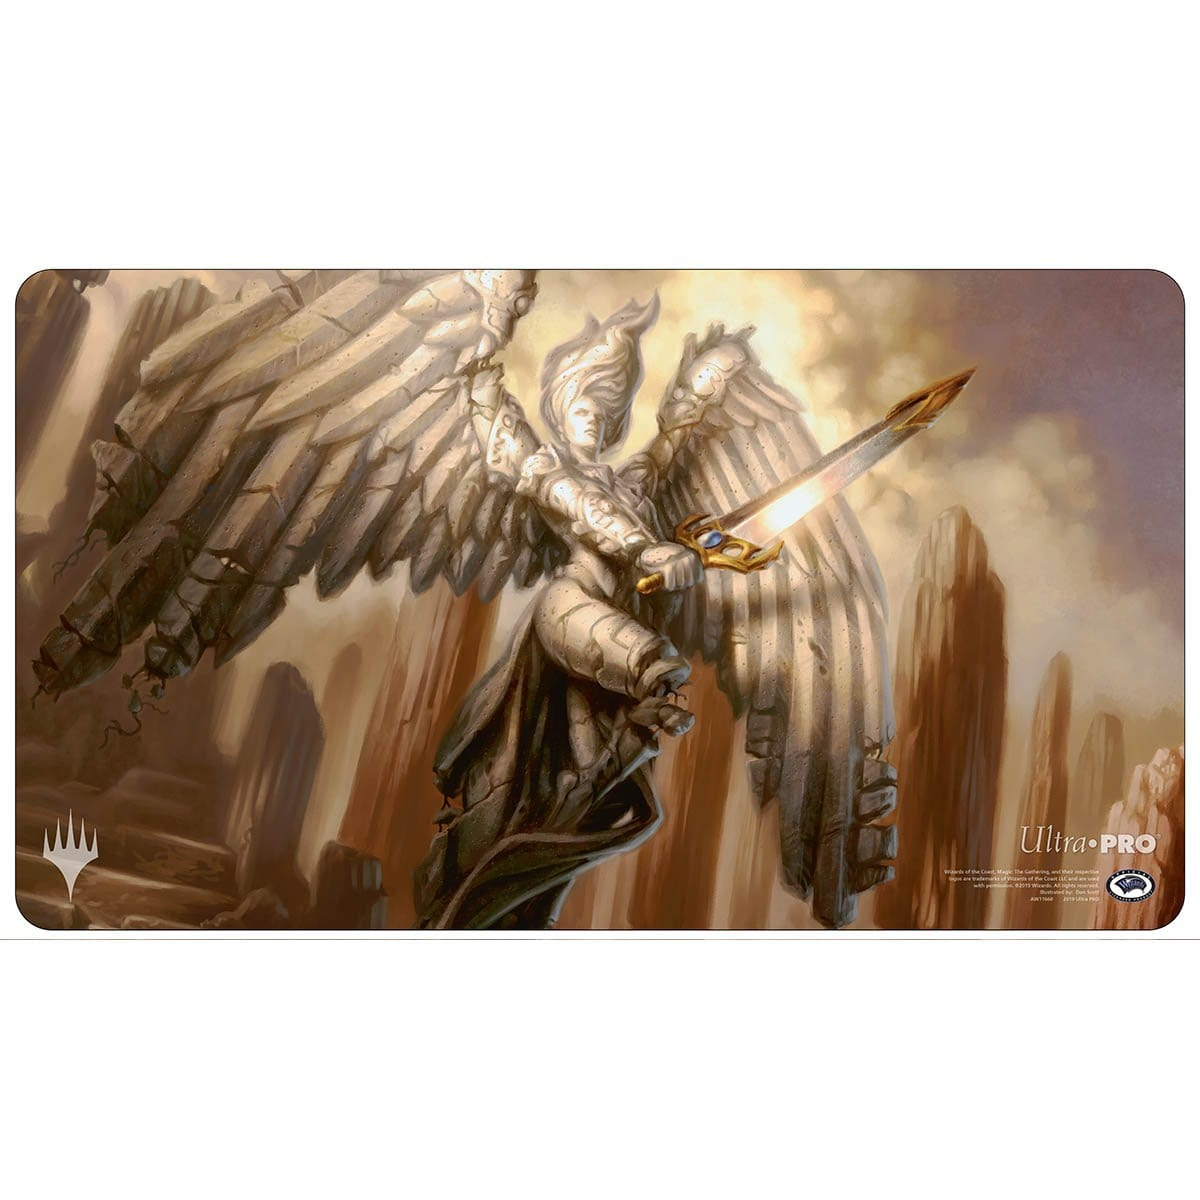 Akroma's Memorial Playmat - Playmat - Original Magic Art - Accessories for Magic the Gathering and other card games